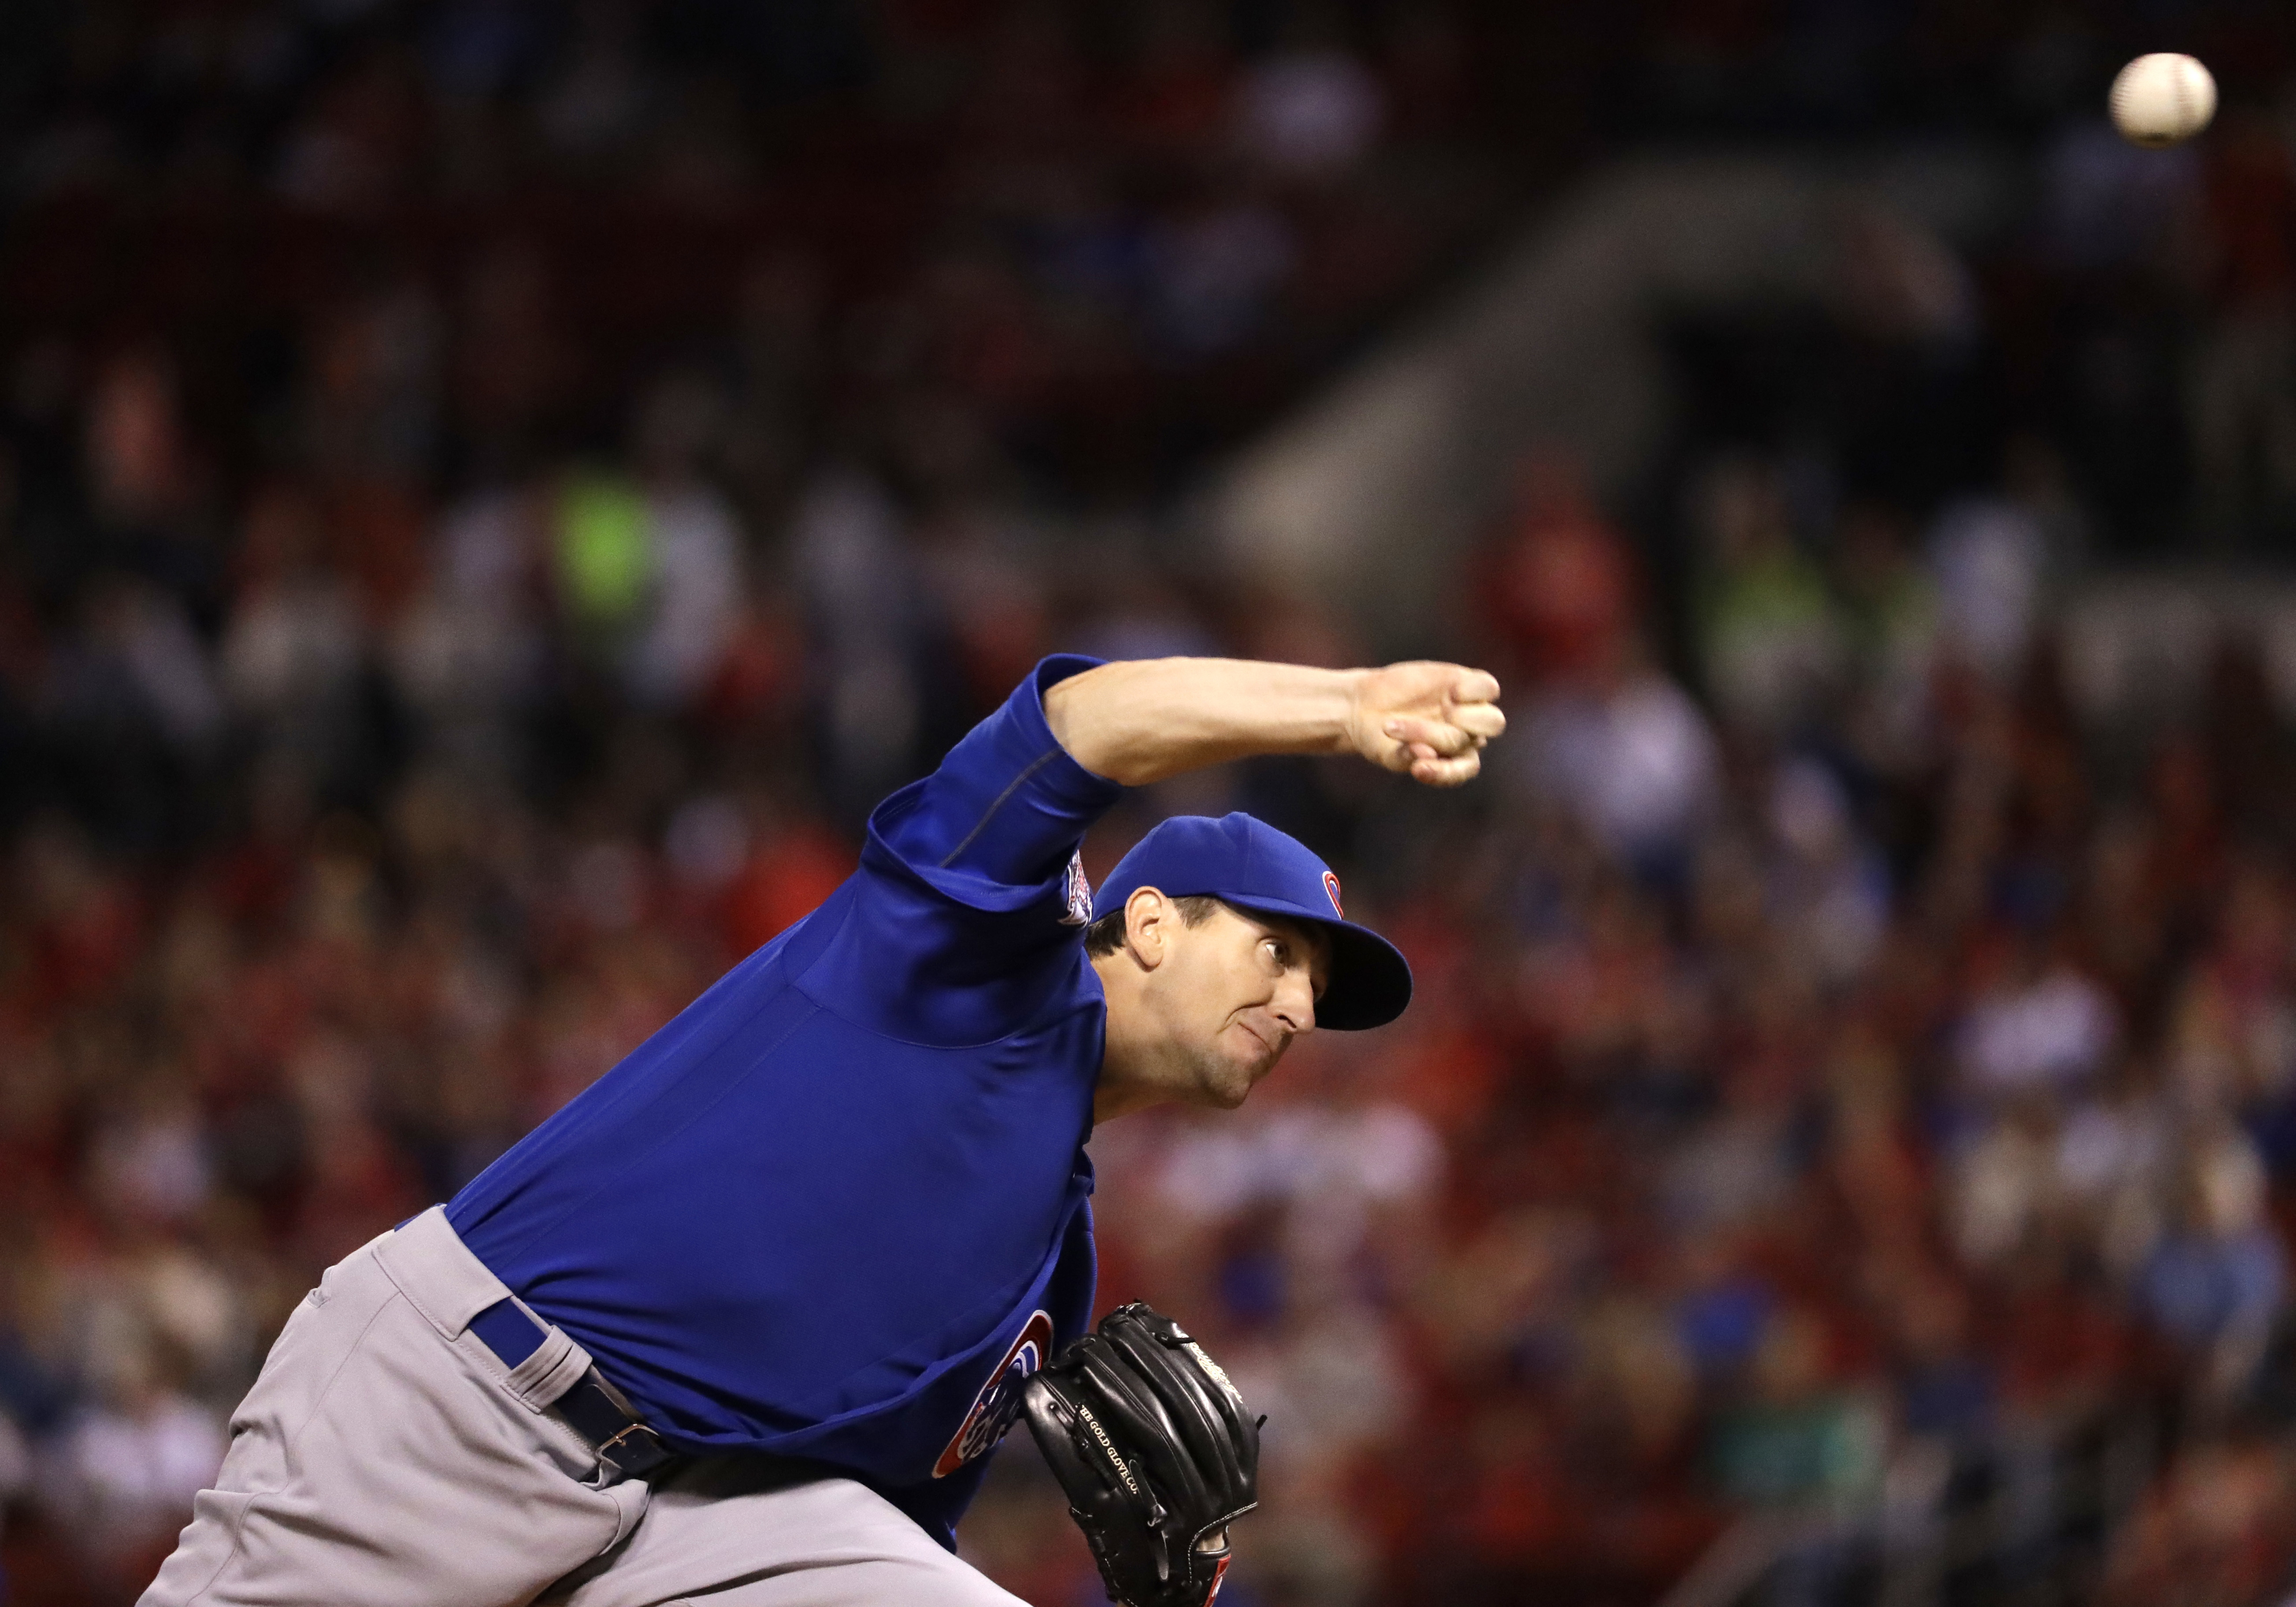 Chicago Cubs starting pitcher Kyle Hendricks throws during the first inning of a baseball game against the St. Louis Cardinals, Monday, Sept. 12, 2016, in St. Louis. (AP Photo/Jeff Roberson)